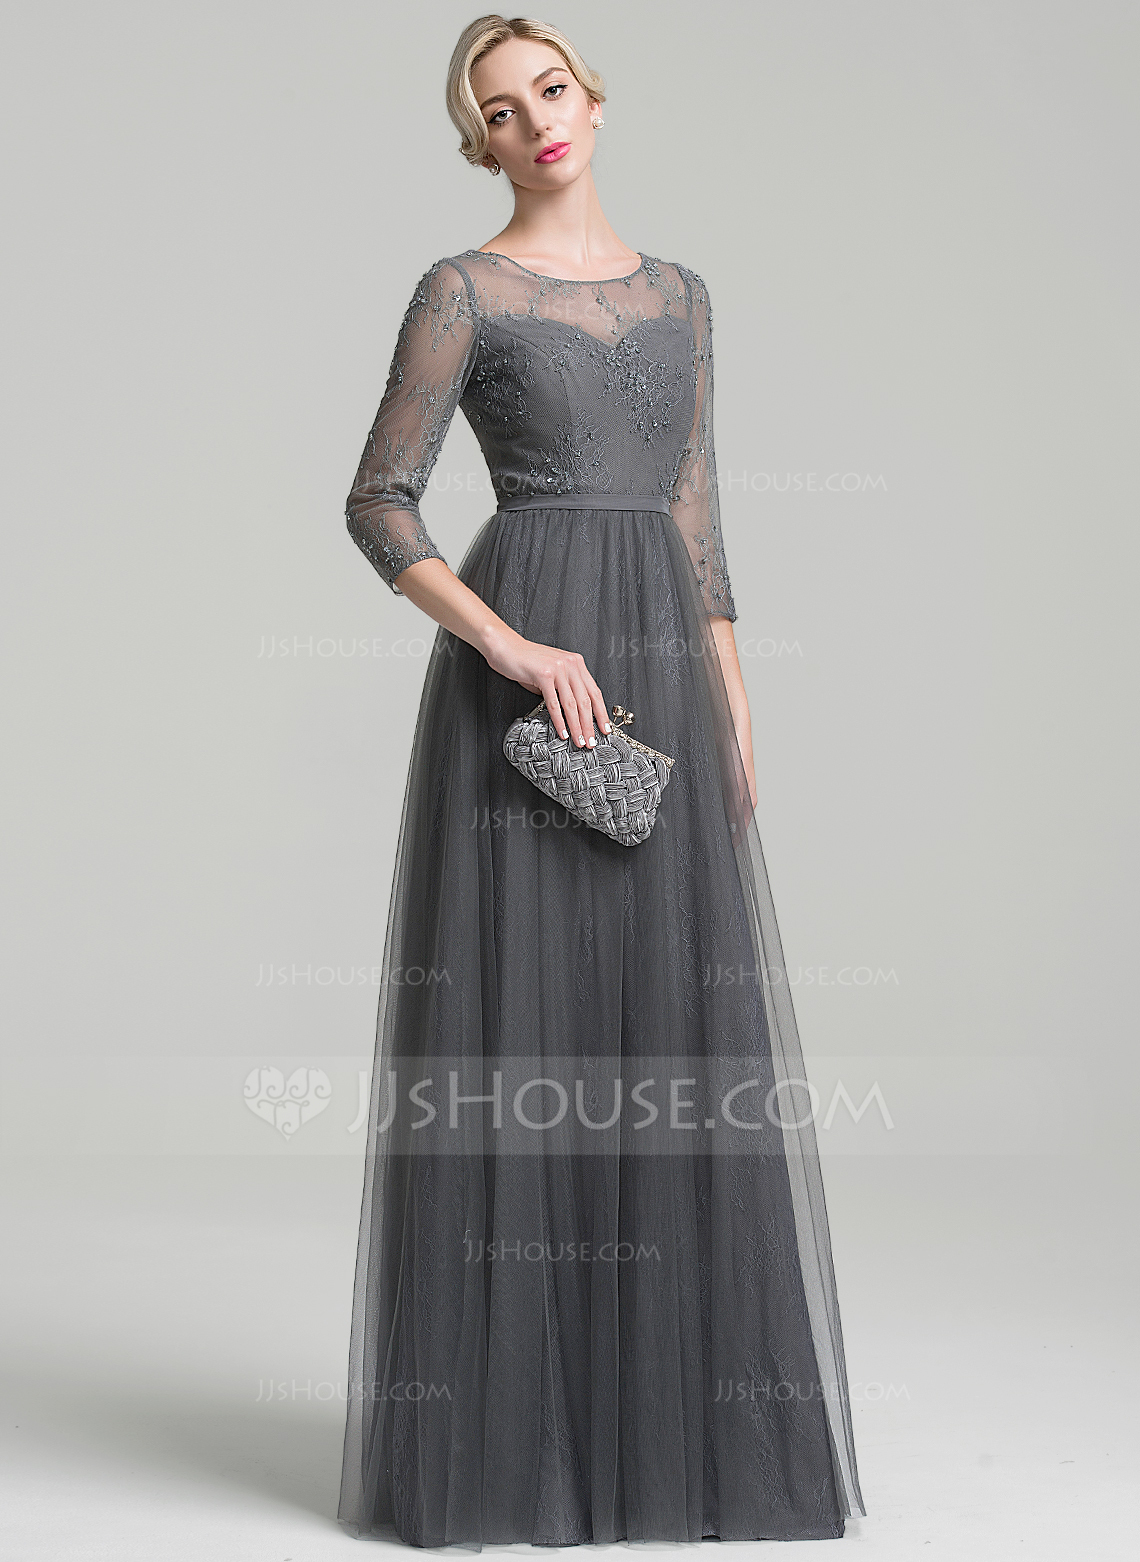 e4400b321d728 A-Line Princess Scoop Neck Floor-Length Tulle Mother of the Bride Dress. Loading  zoom